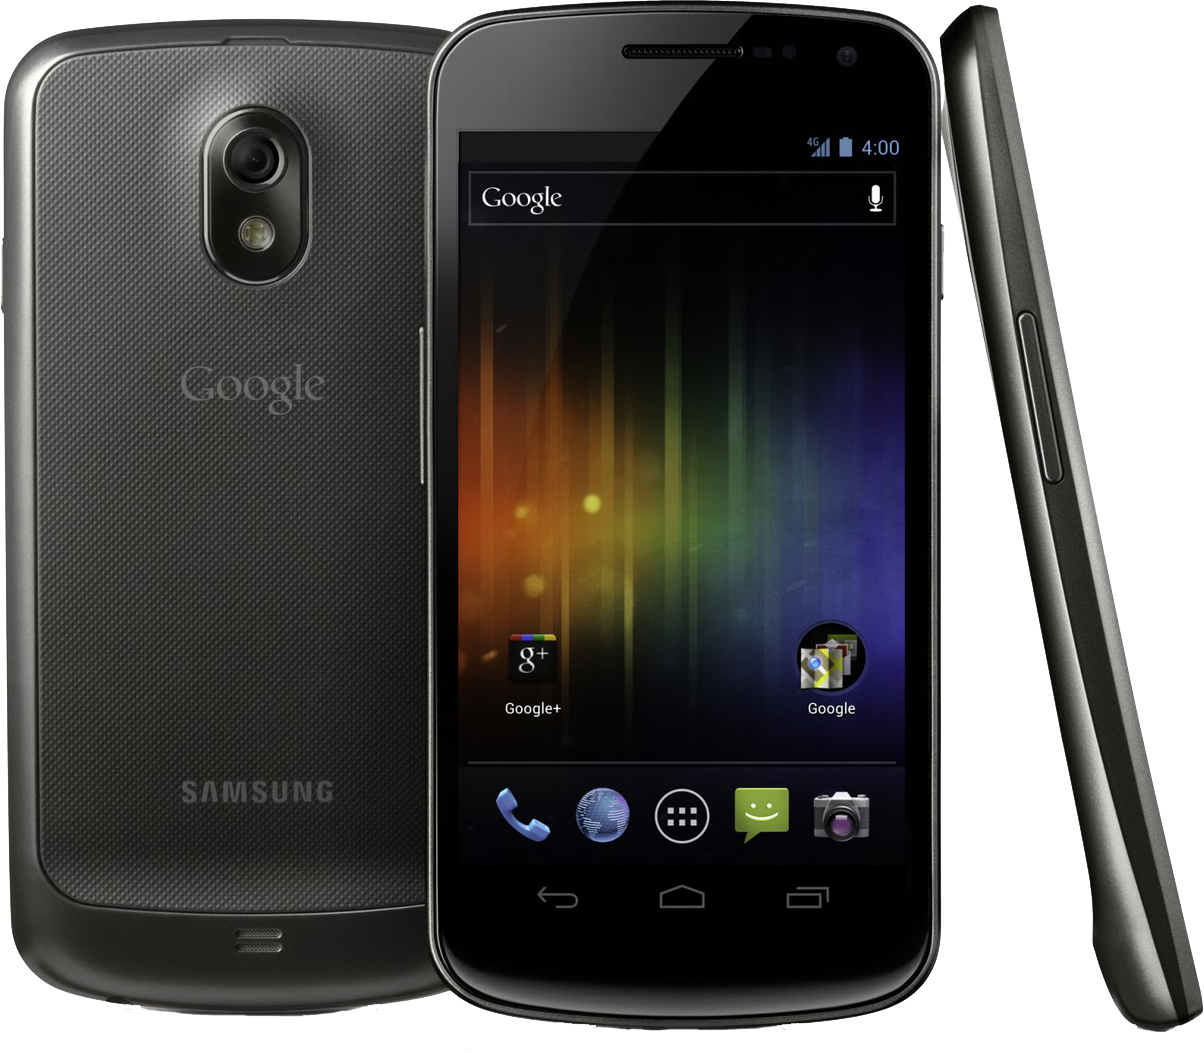 Samsung Galaxy Nexus: comandi vocali, batteria, Flash Player e benchmark